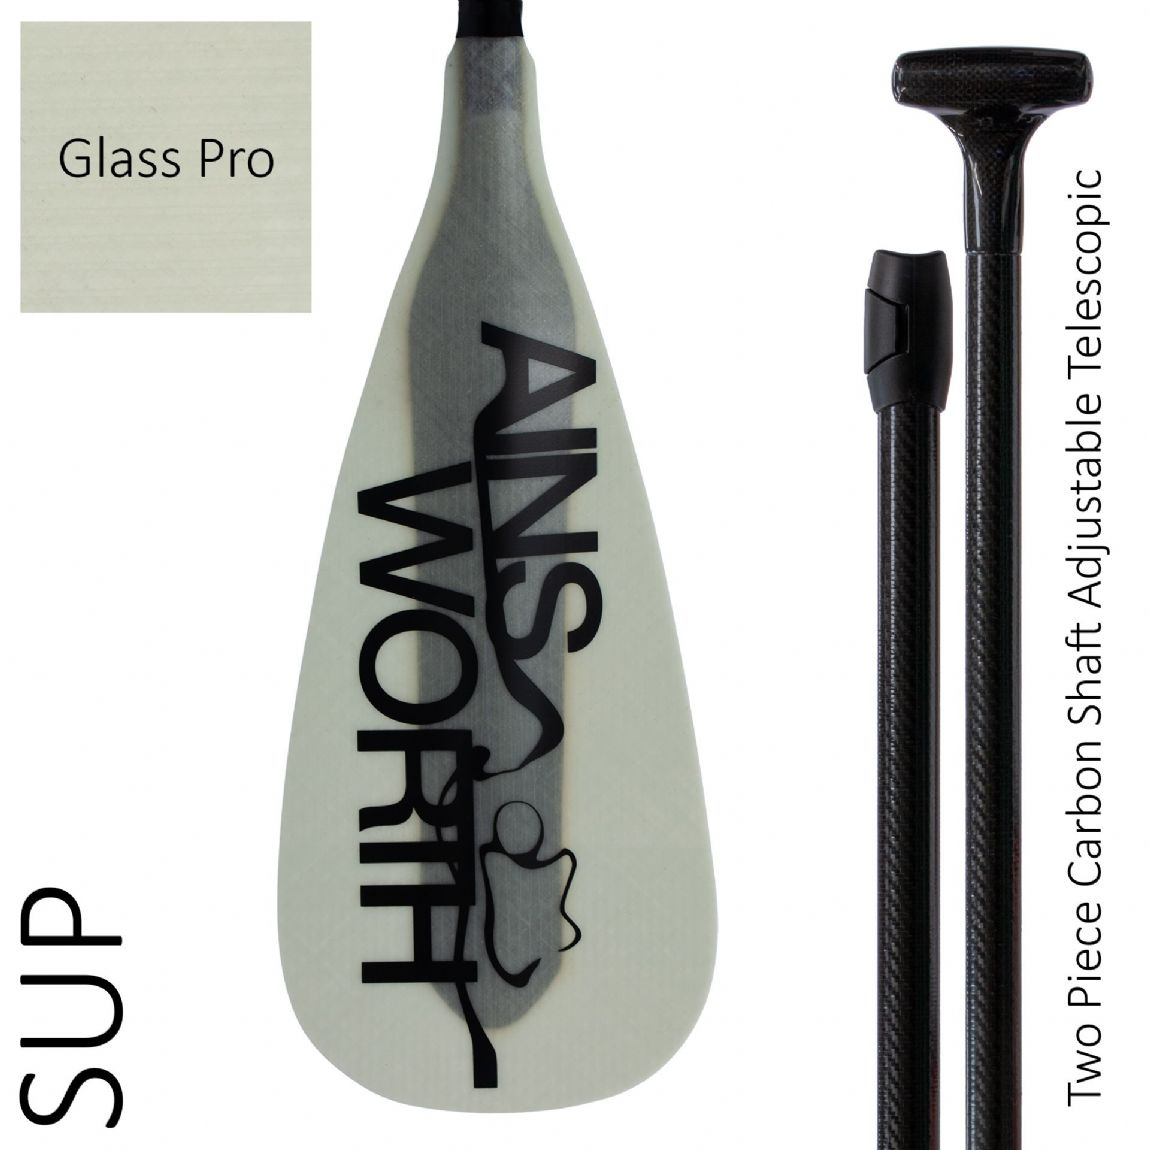 SUP (Glass Pro) Two Piece Carbon Shaft Adjustable Telescopic